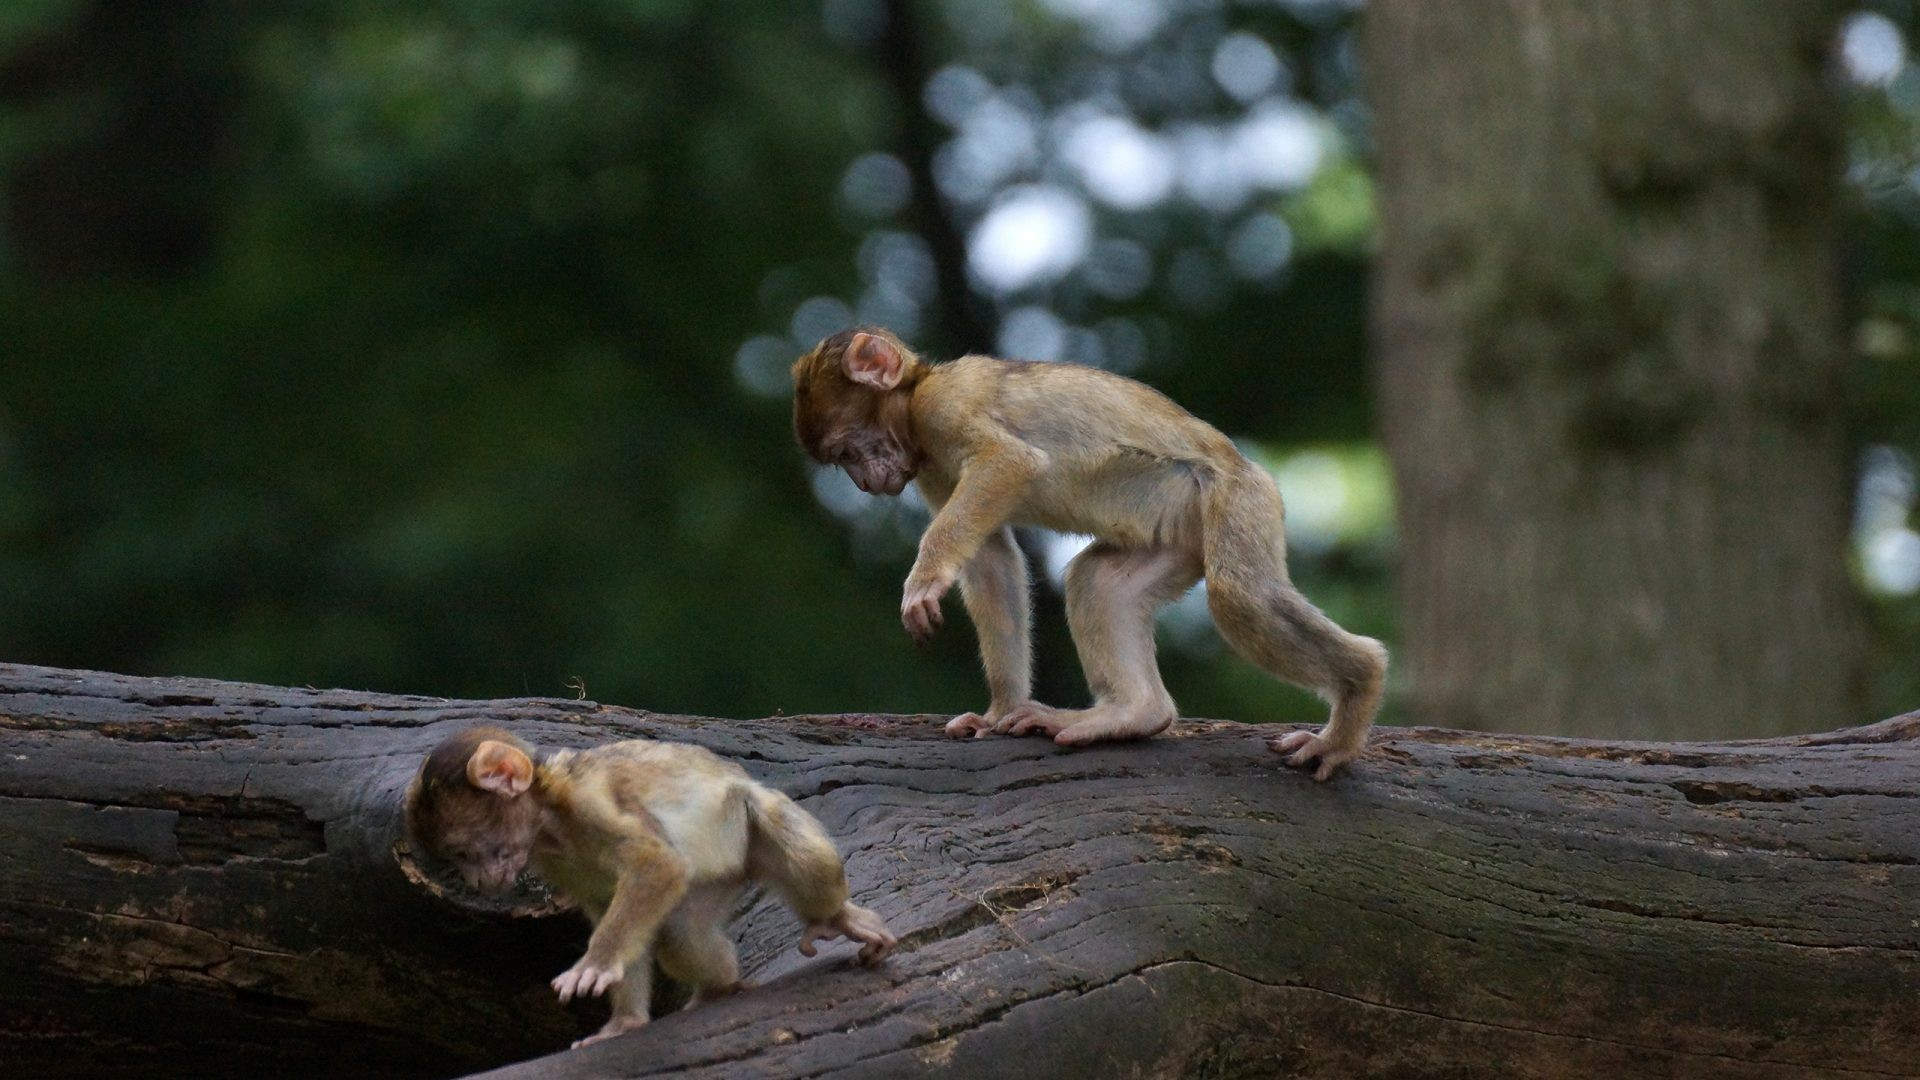 1920x1080 Monkey Tag - Small Monkey Baby Cute Animals Doing Funny Things for HD 16:9